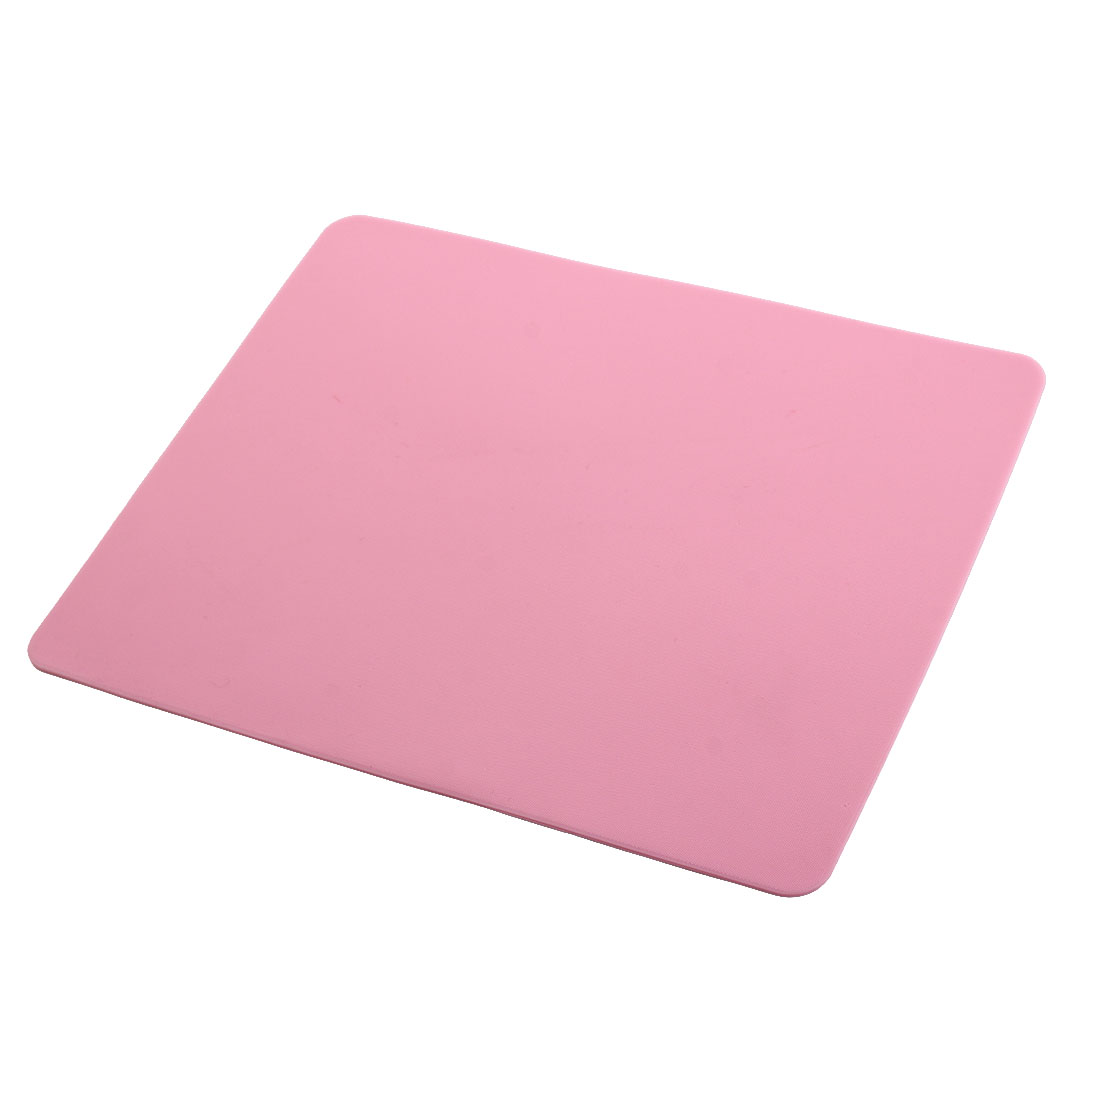 Mini Pink Anti-slip Silicone Mouse Pad for Laptop/PC